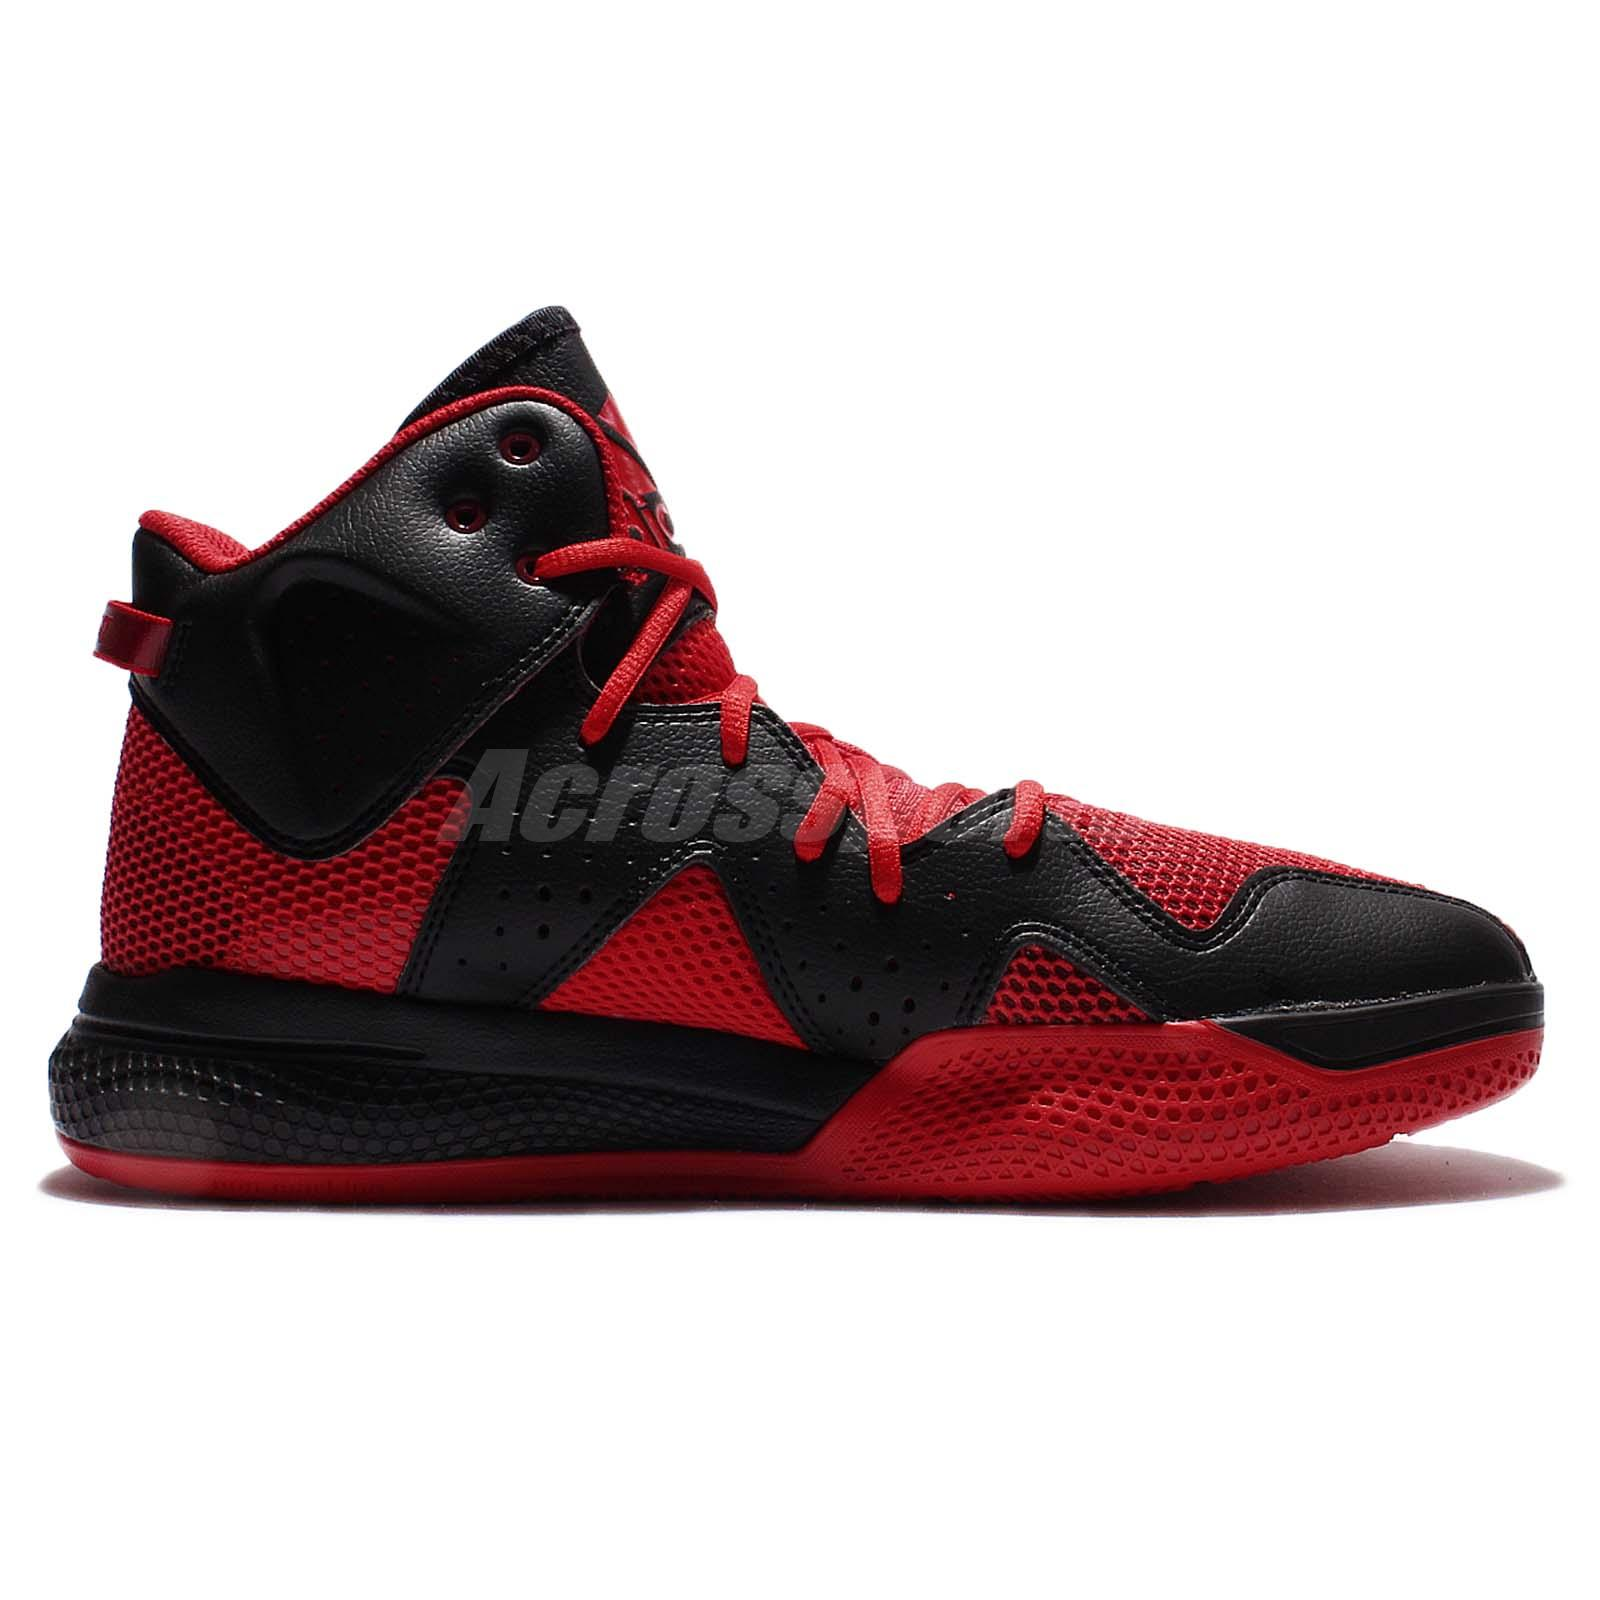 3dab62a4627 ... where to buy red and black adidas basketball shoes 57933 009ed